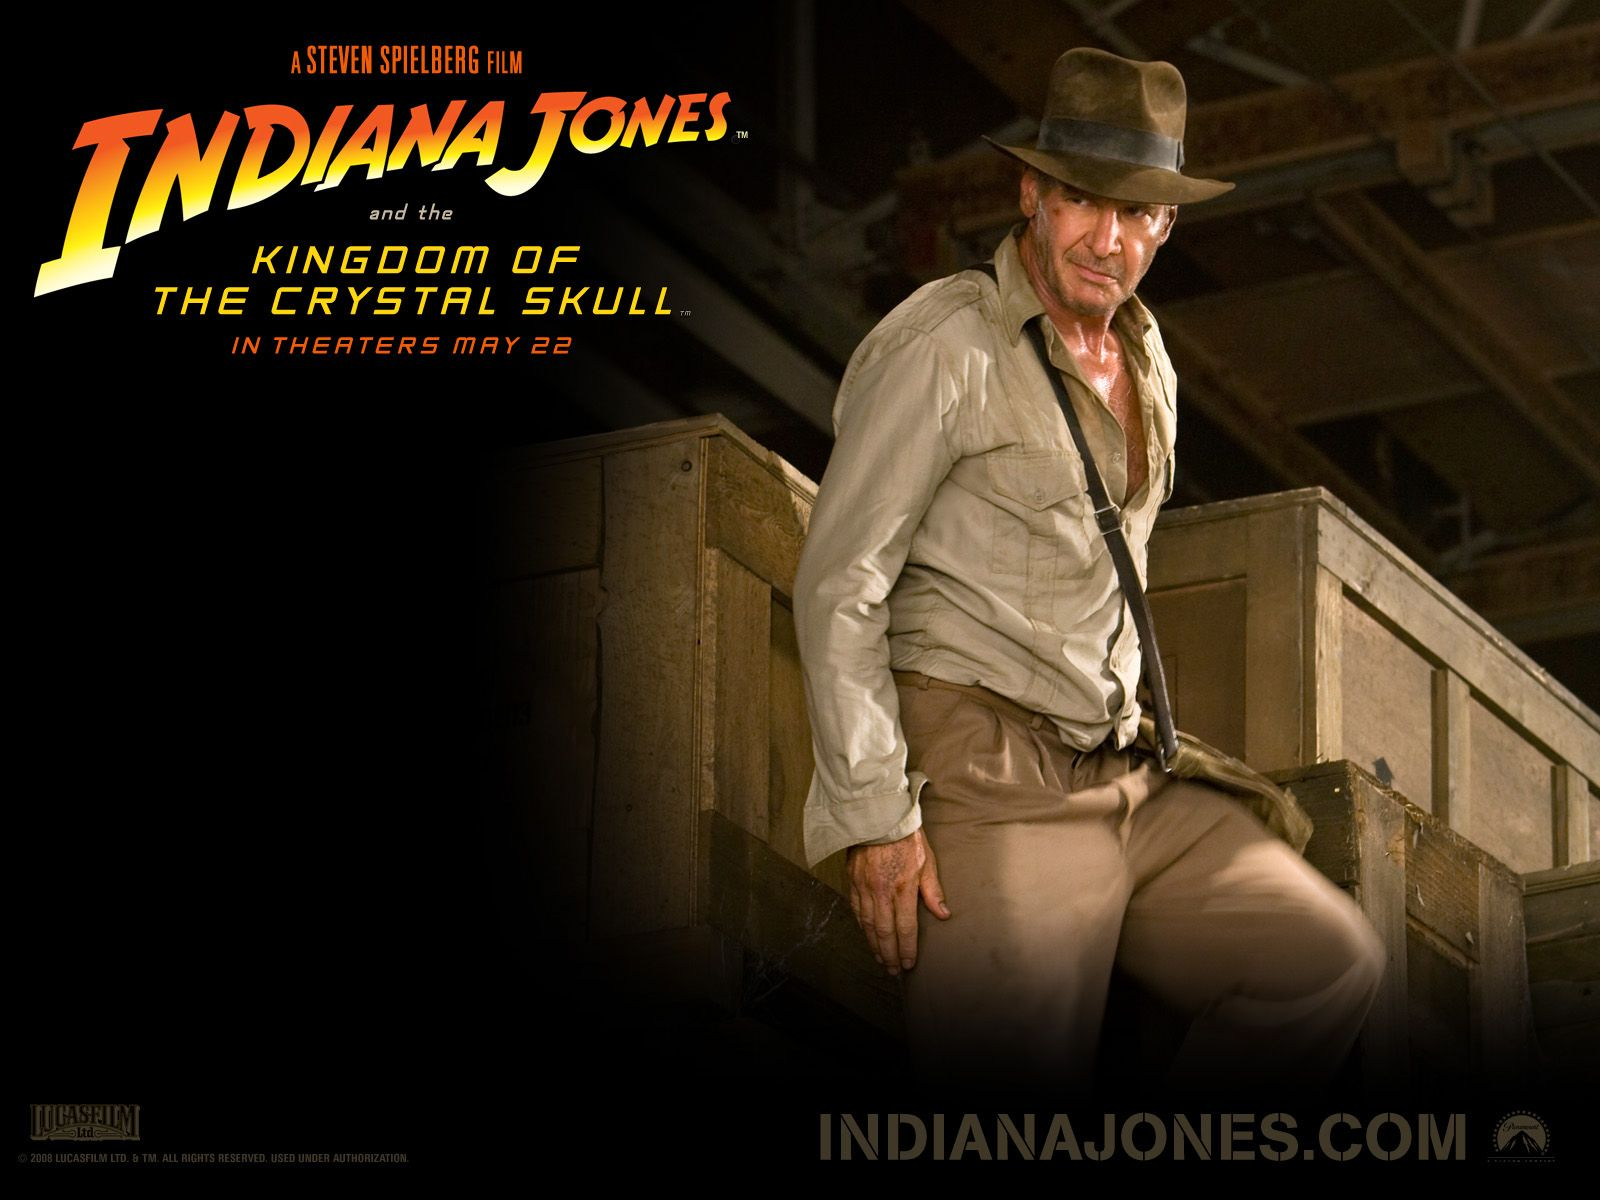 Watch Streaming HD Indiana Jones And The Kingdom Of The Crystal Skull, starring Harrison Ford, Cate Blanchett, Shia LaBeouf, Karen Allen. Famed archaeologist/adventurer Dr. Henry 'Indiana' Jones is called back into action when he becomes entangled in a Soviet plot to uncover the secret behind mysterious artifacts known as the Crystal Skulls. #Action #Adventure http://play.theatrr.com/play.php?movie=0367882